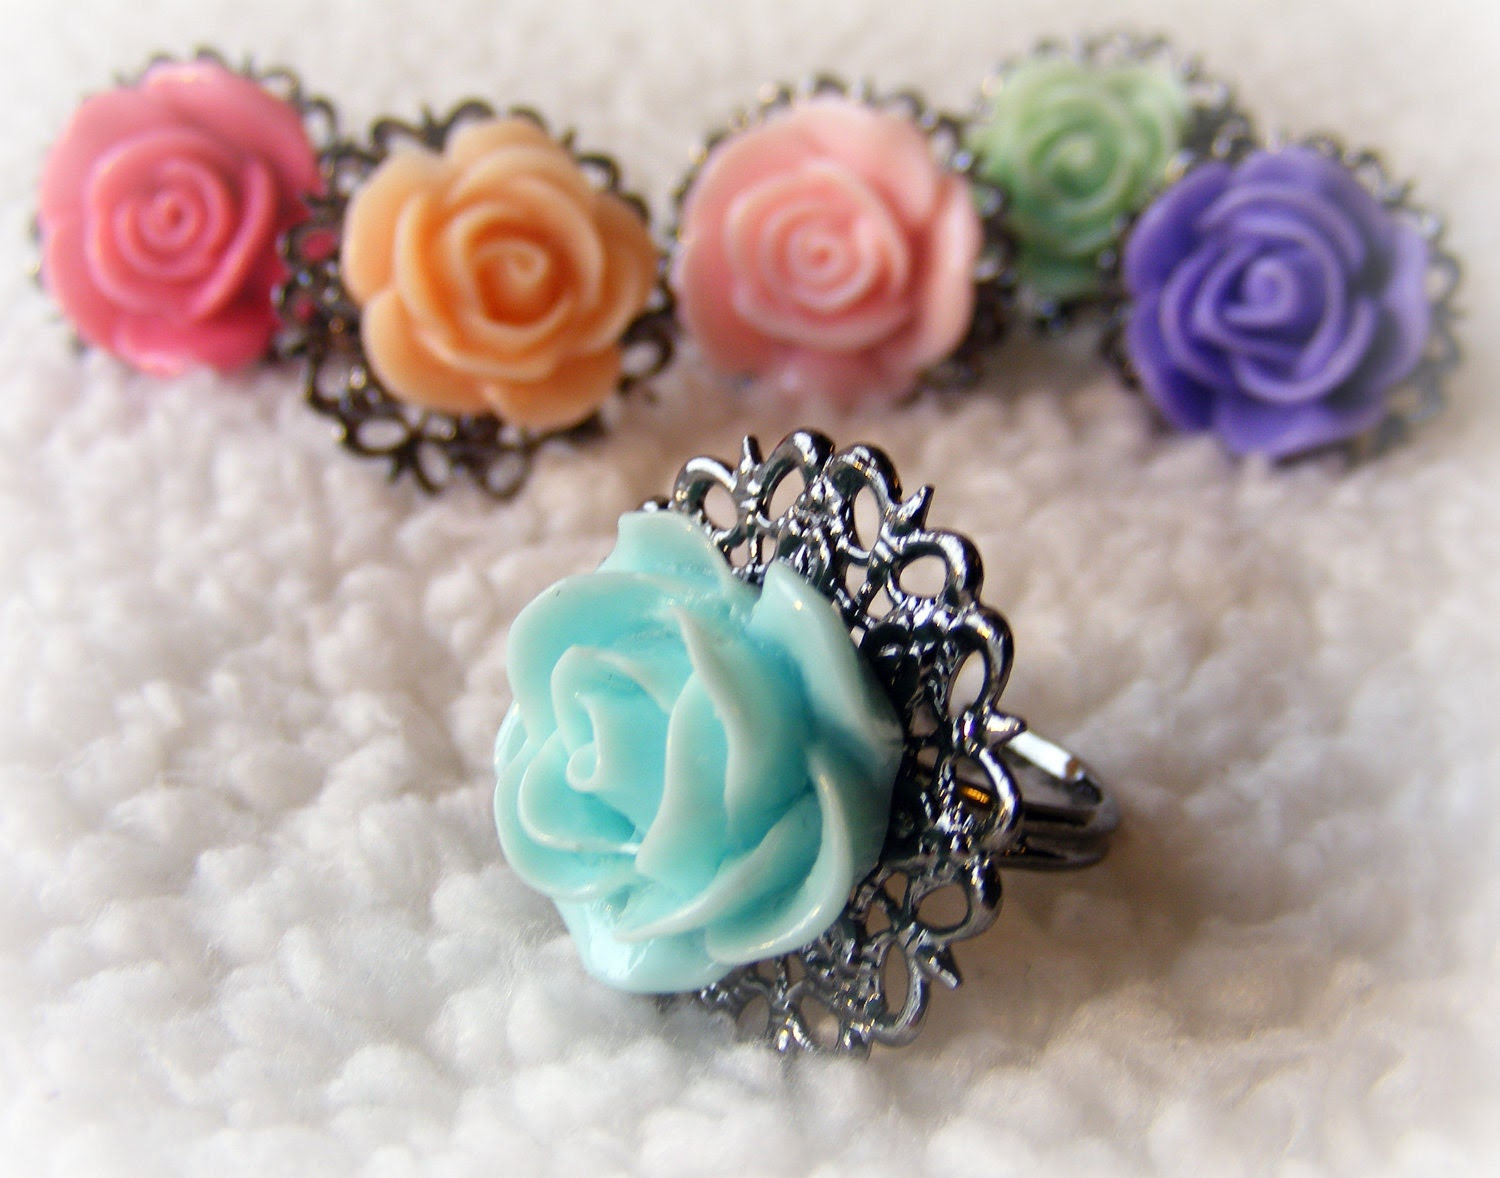 Ring Filigree Rose for Spring (your choice of color)